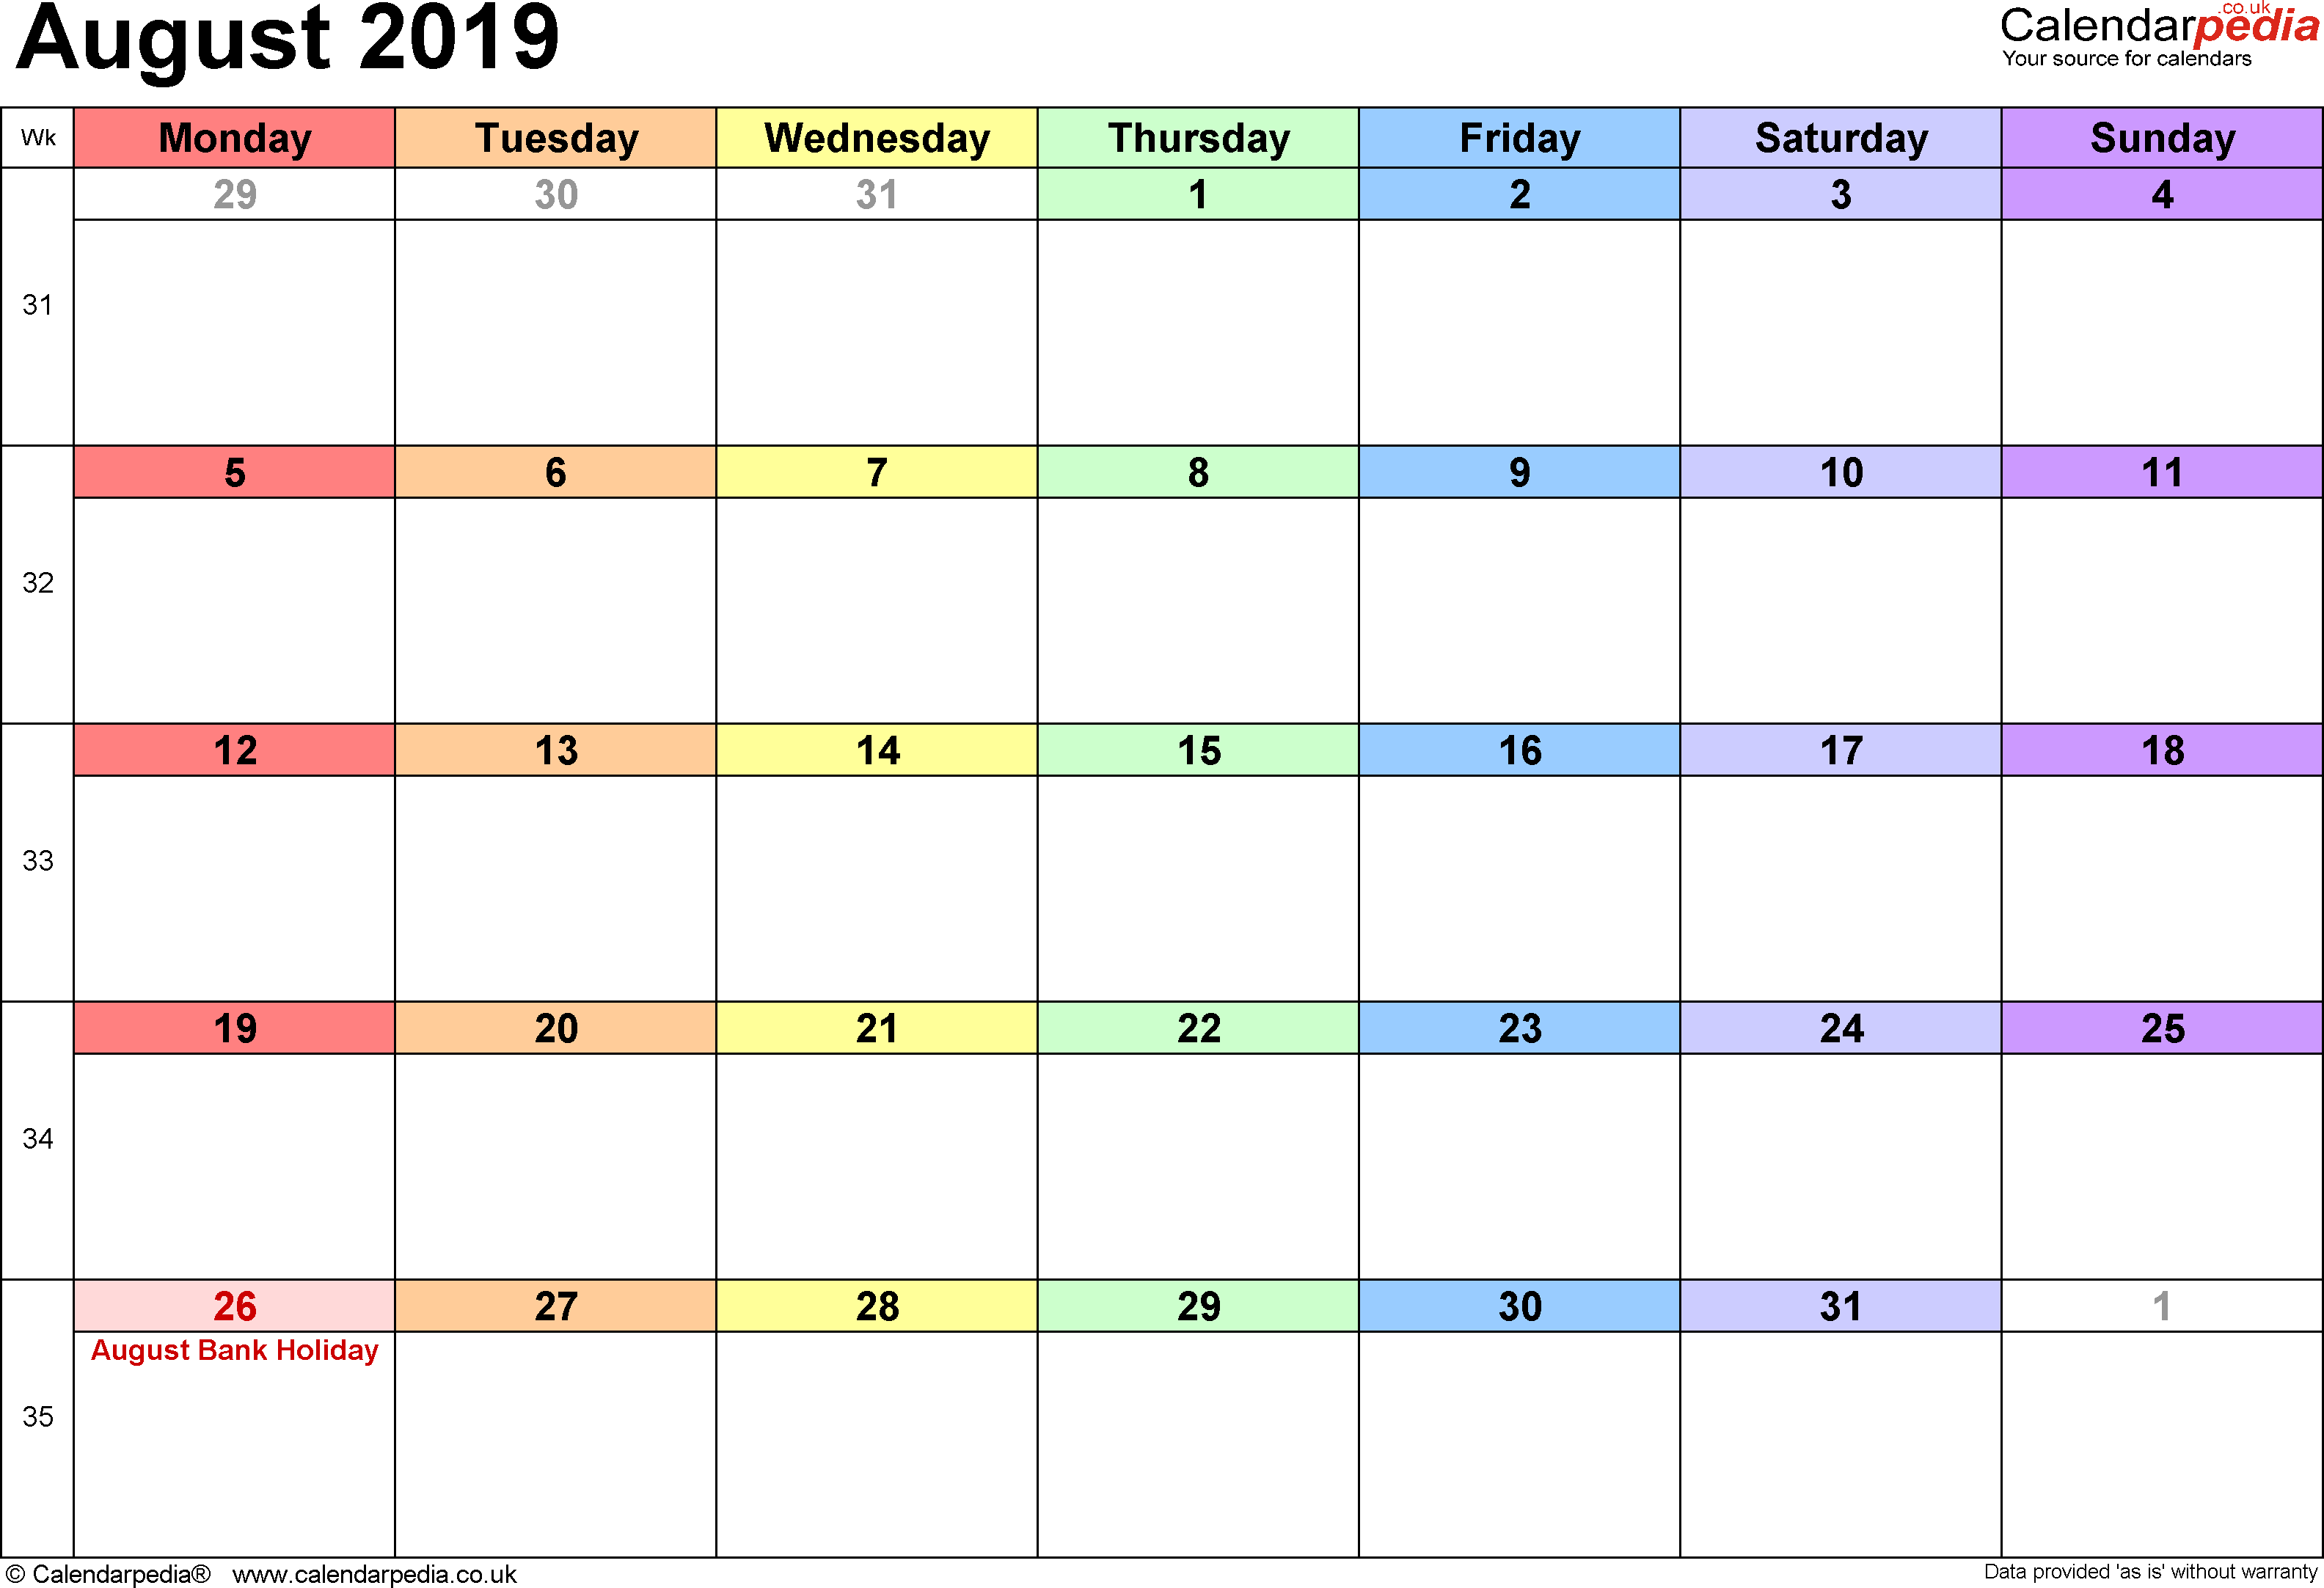 calendar august 2019 uk  bank holidays  excel  pdf  word